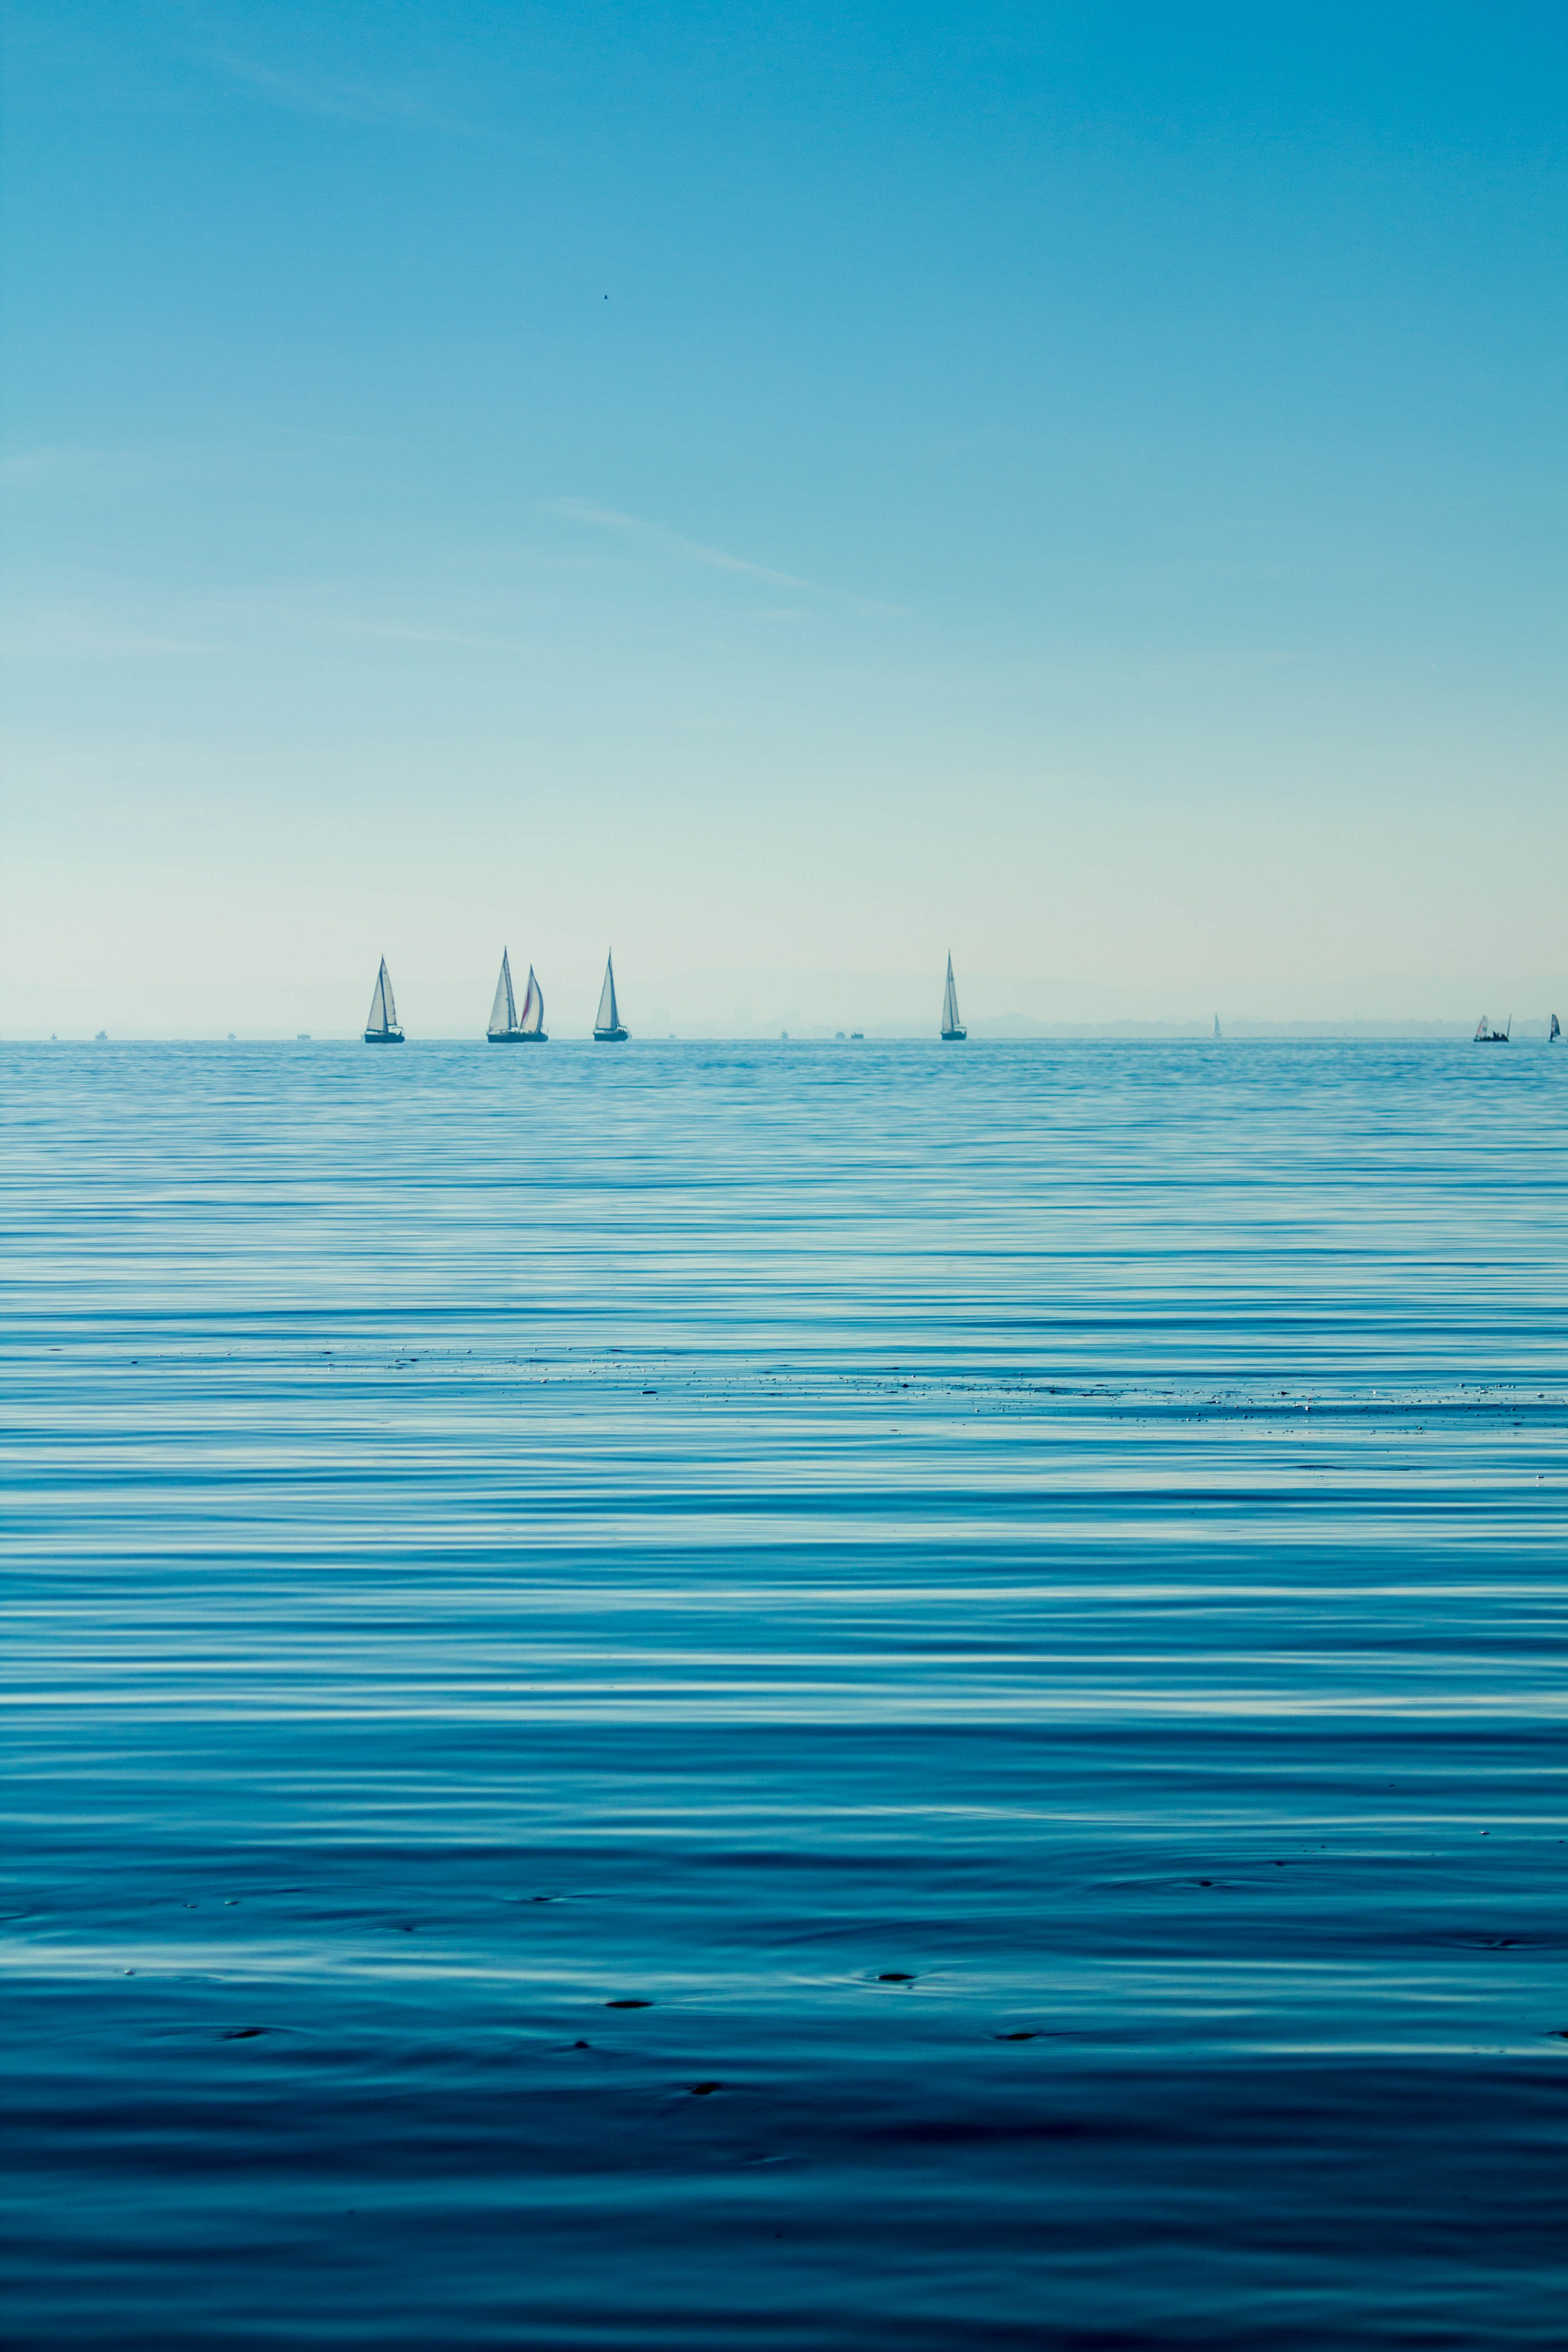 Boats on body of water under blue sky photo